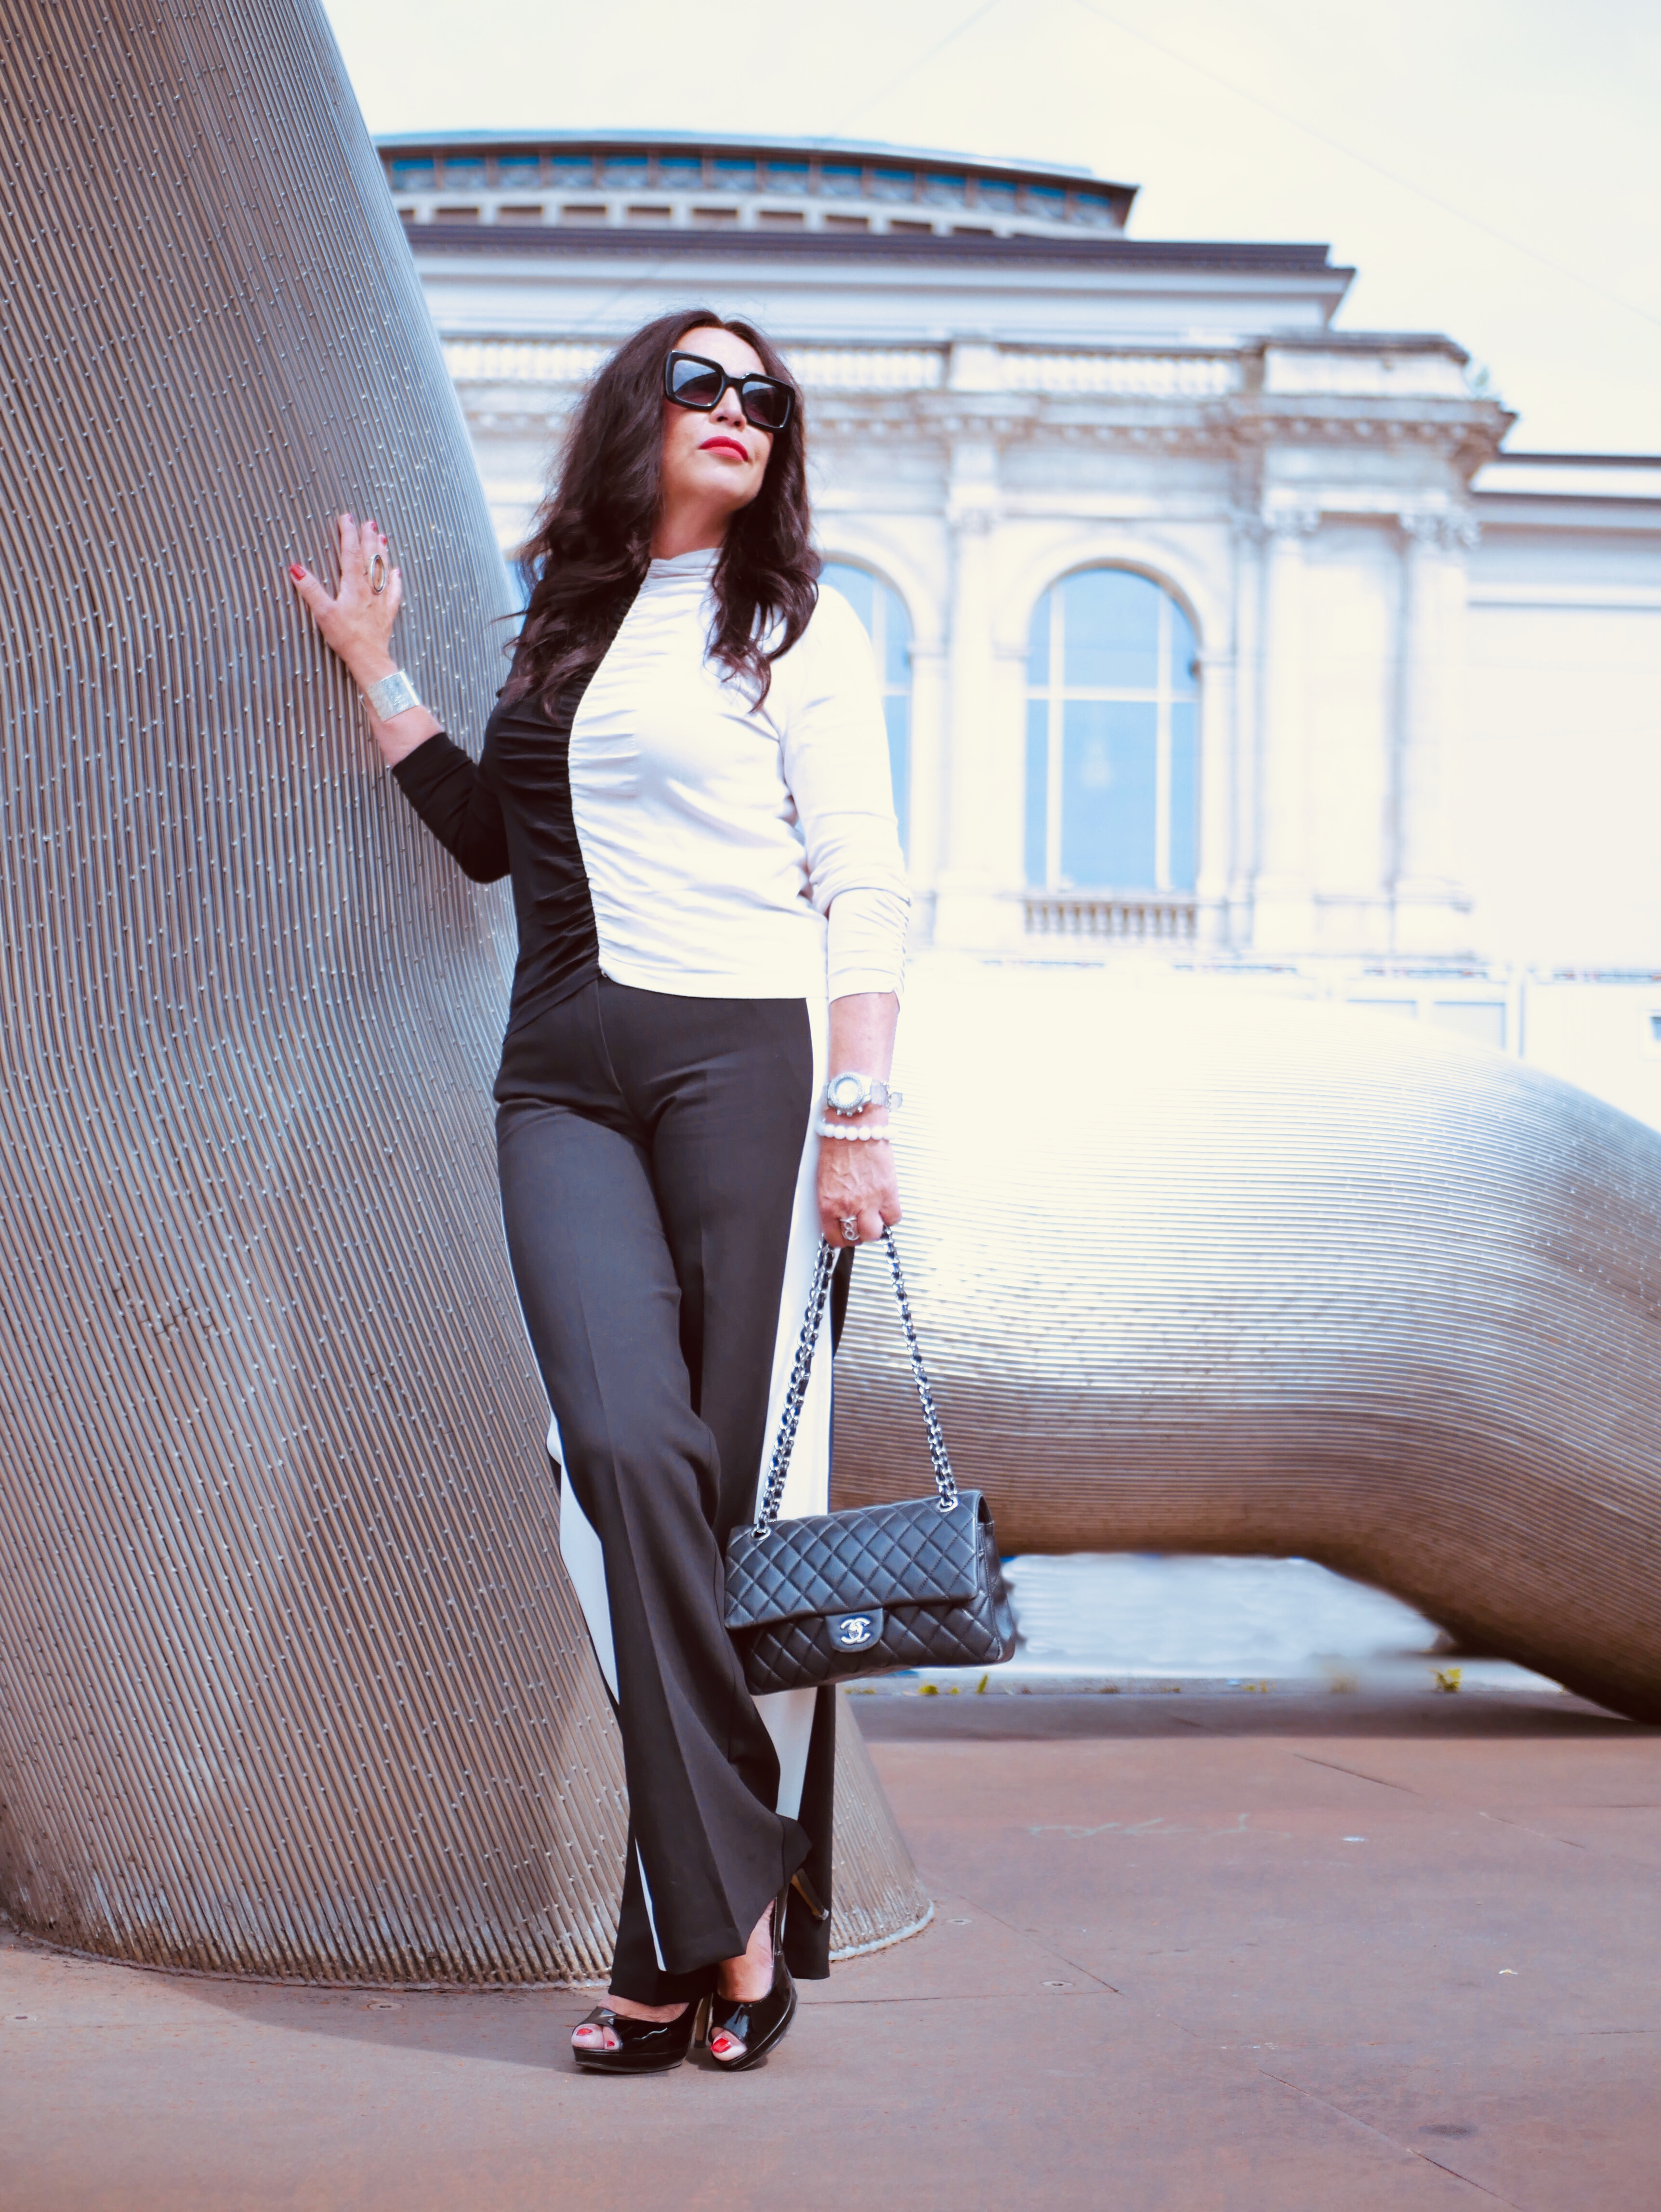 Sfizio pants, Zara top, Nine West shoes, Burberry shades, Chanel bag, mystyle, over50, 50plushappy, cochastyle, italia moda, style for ladies, fashionblogger, eyewearblogger, accessoires, streetstyle, fashion is my passion